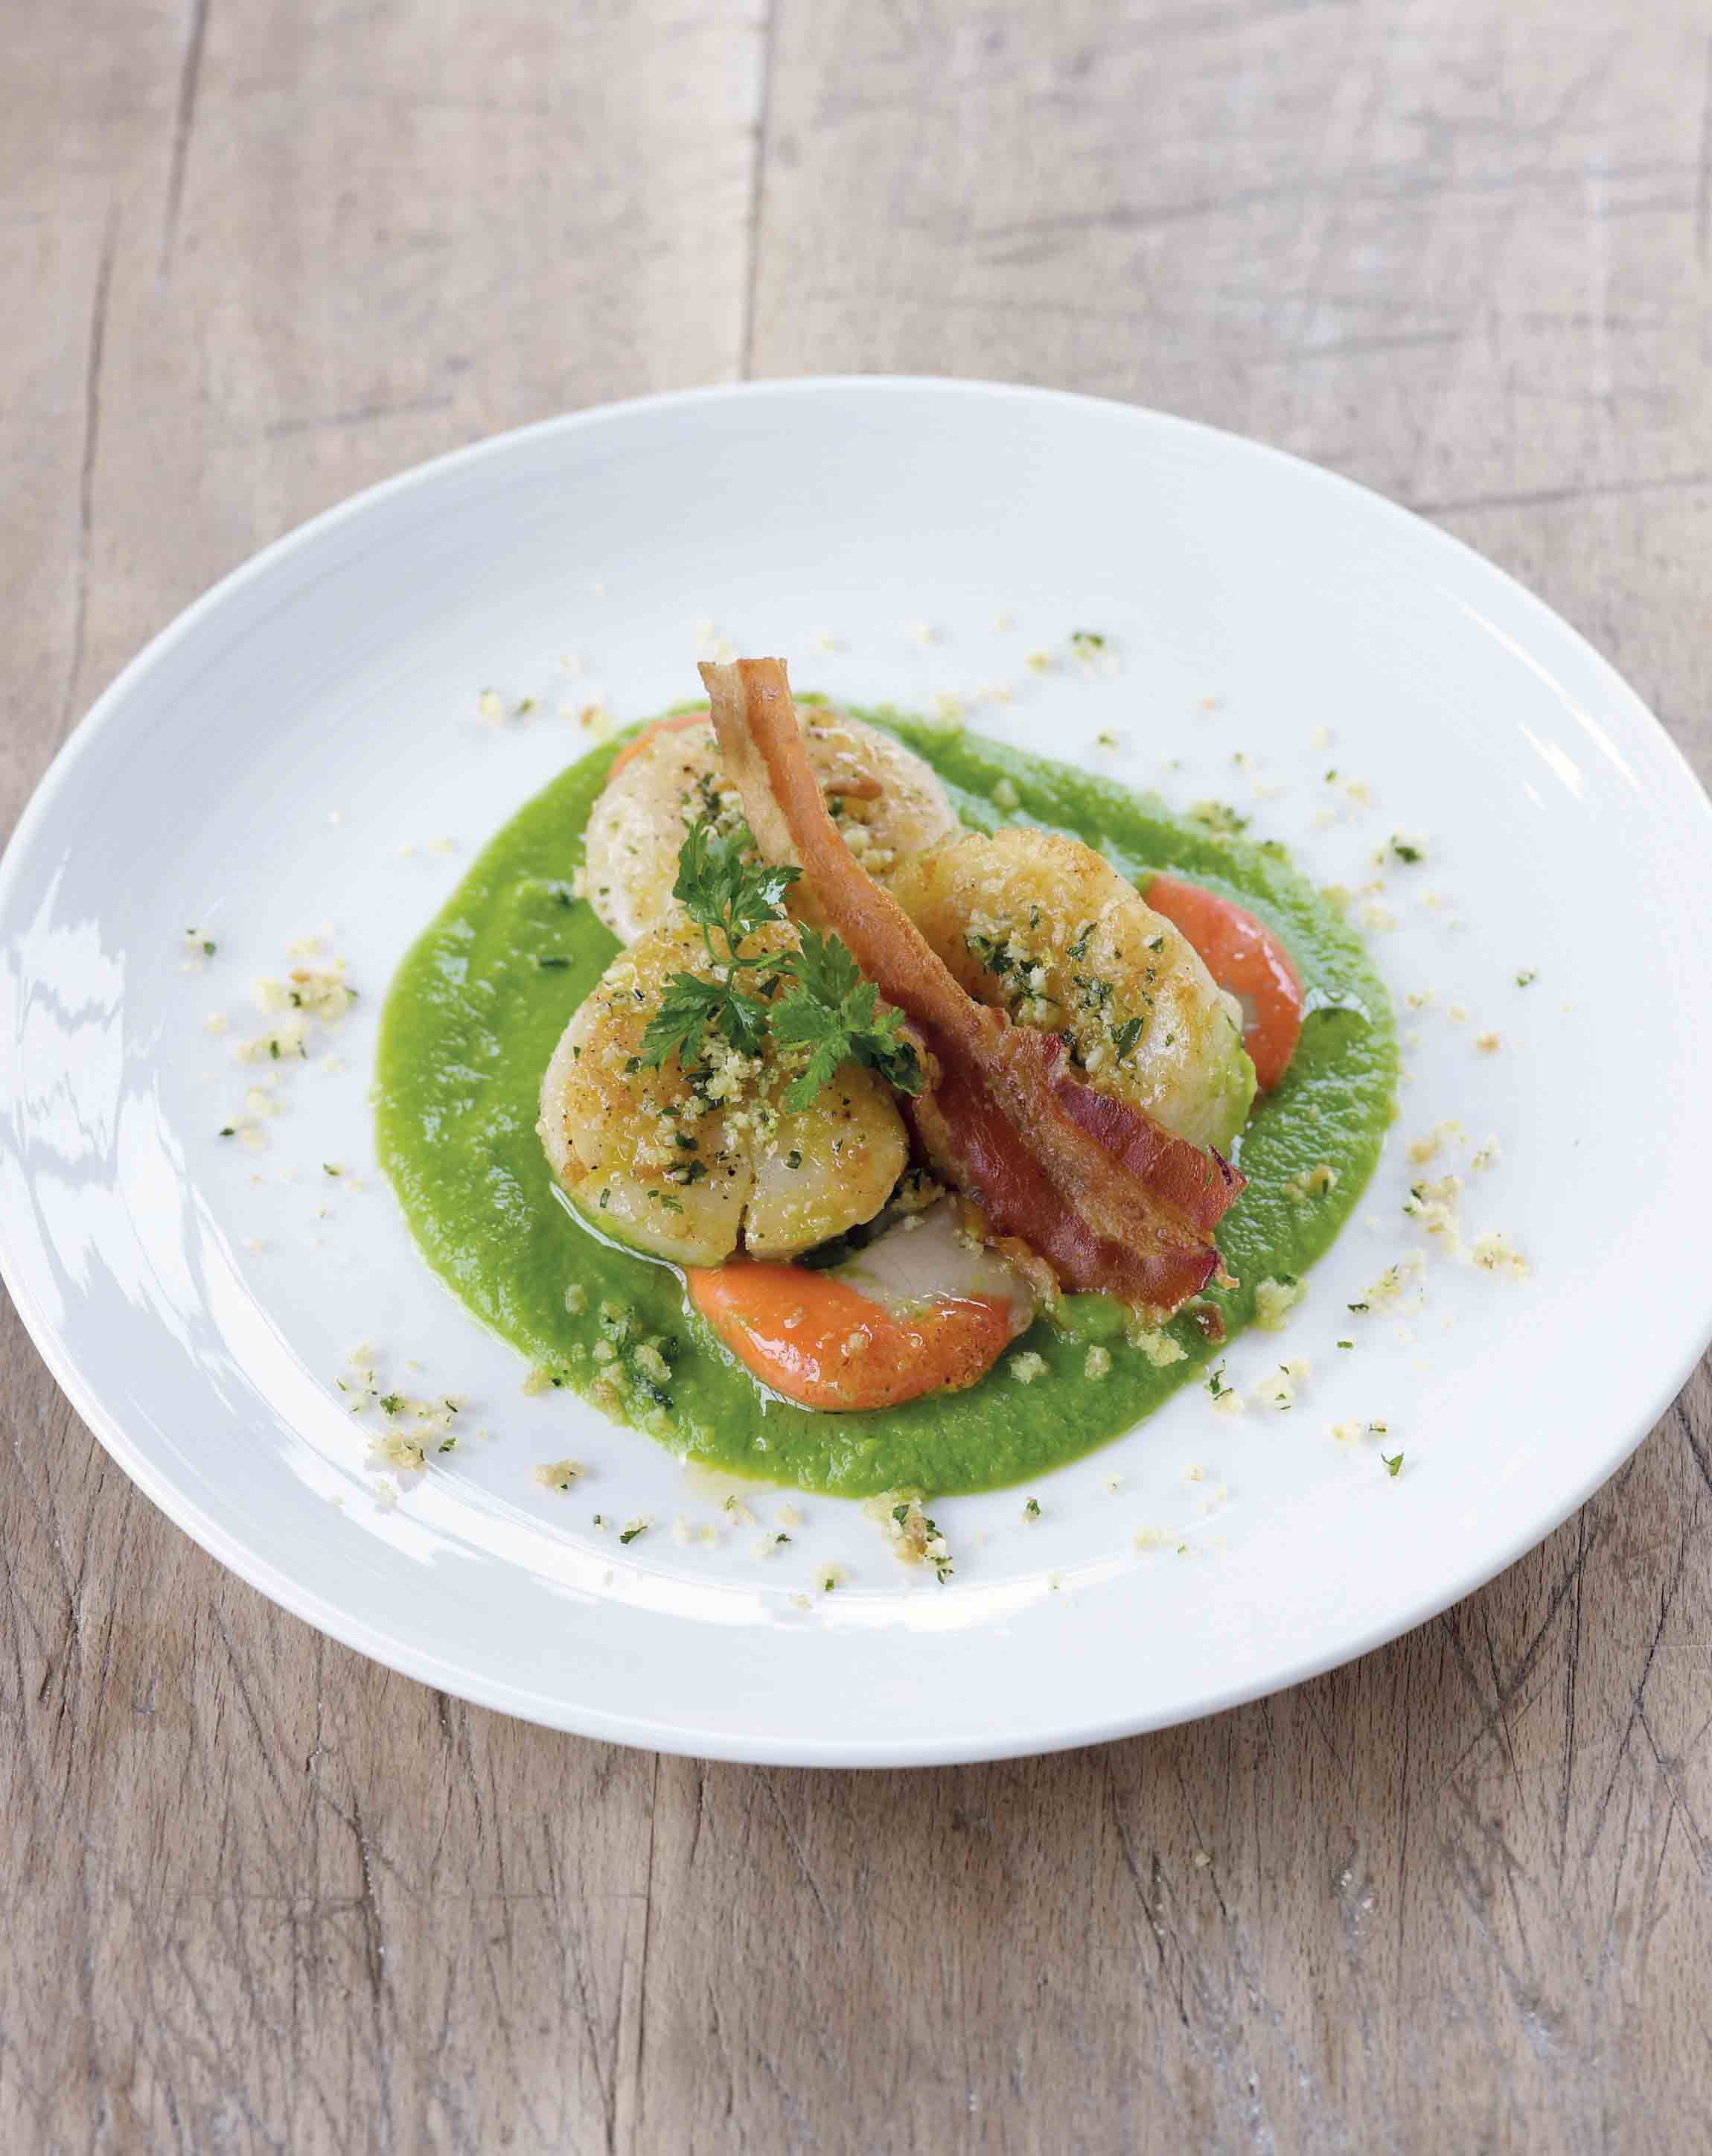 Pan-fried scallops with pea purée, pancetta and almond gremolata